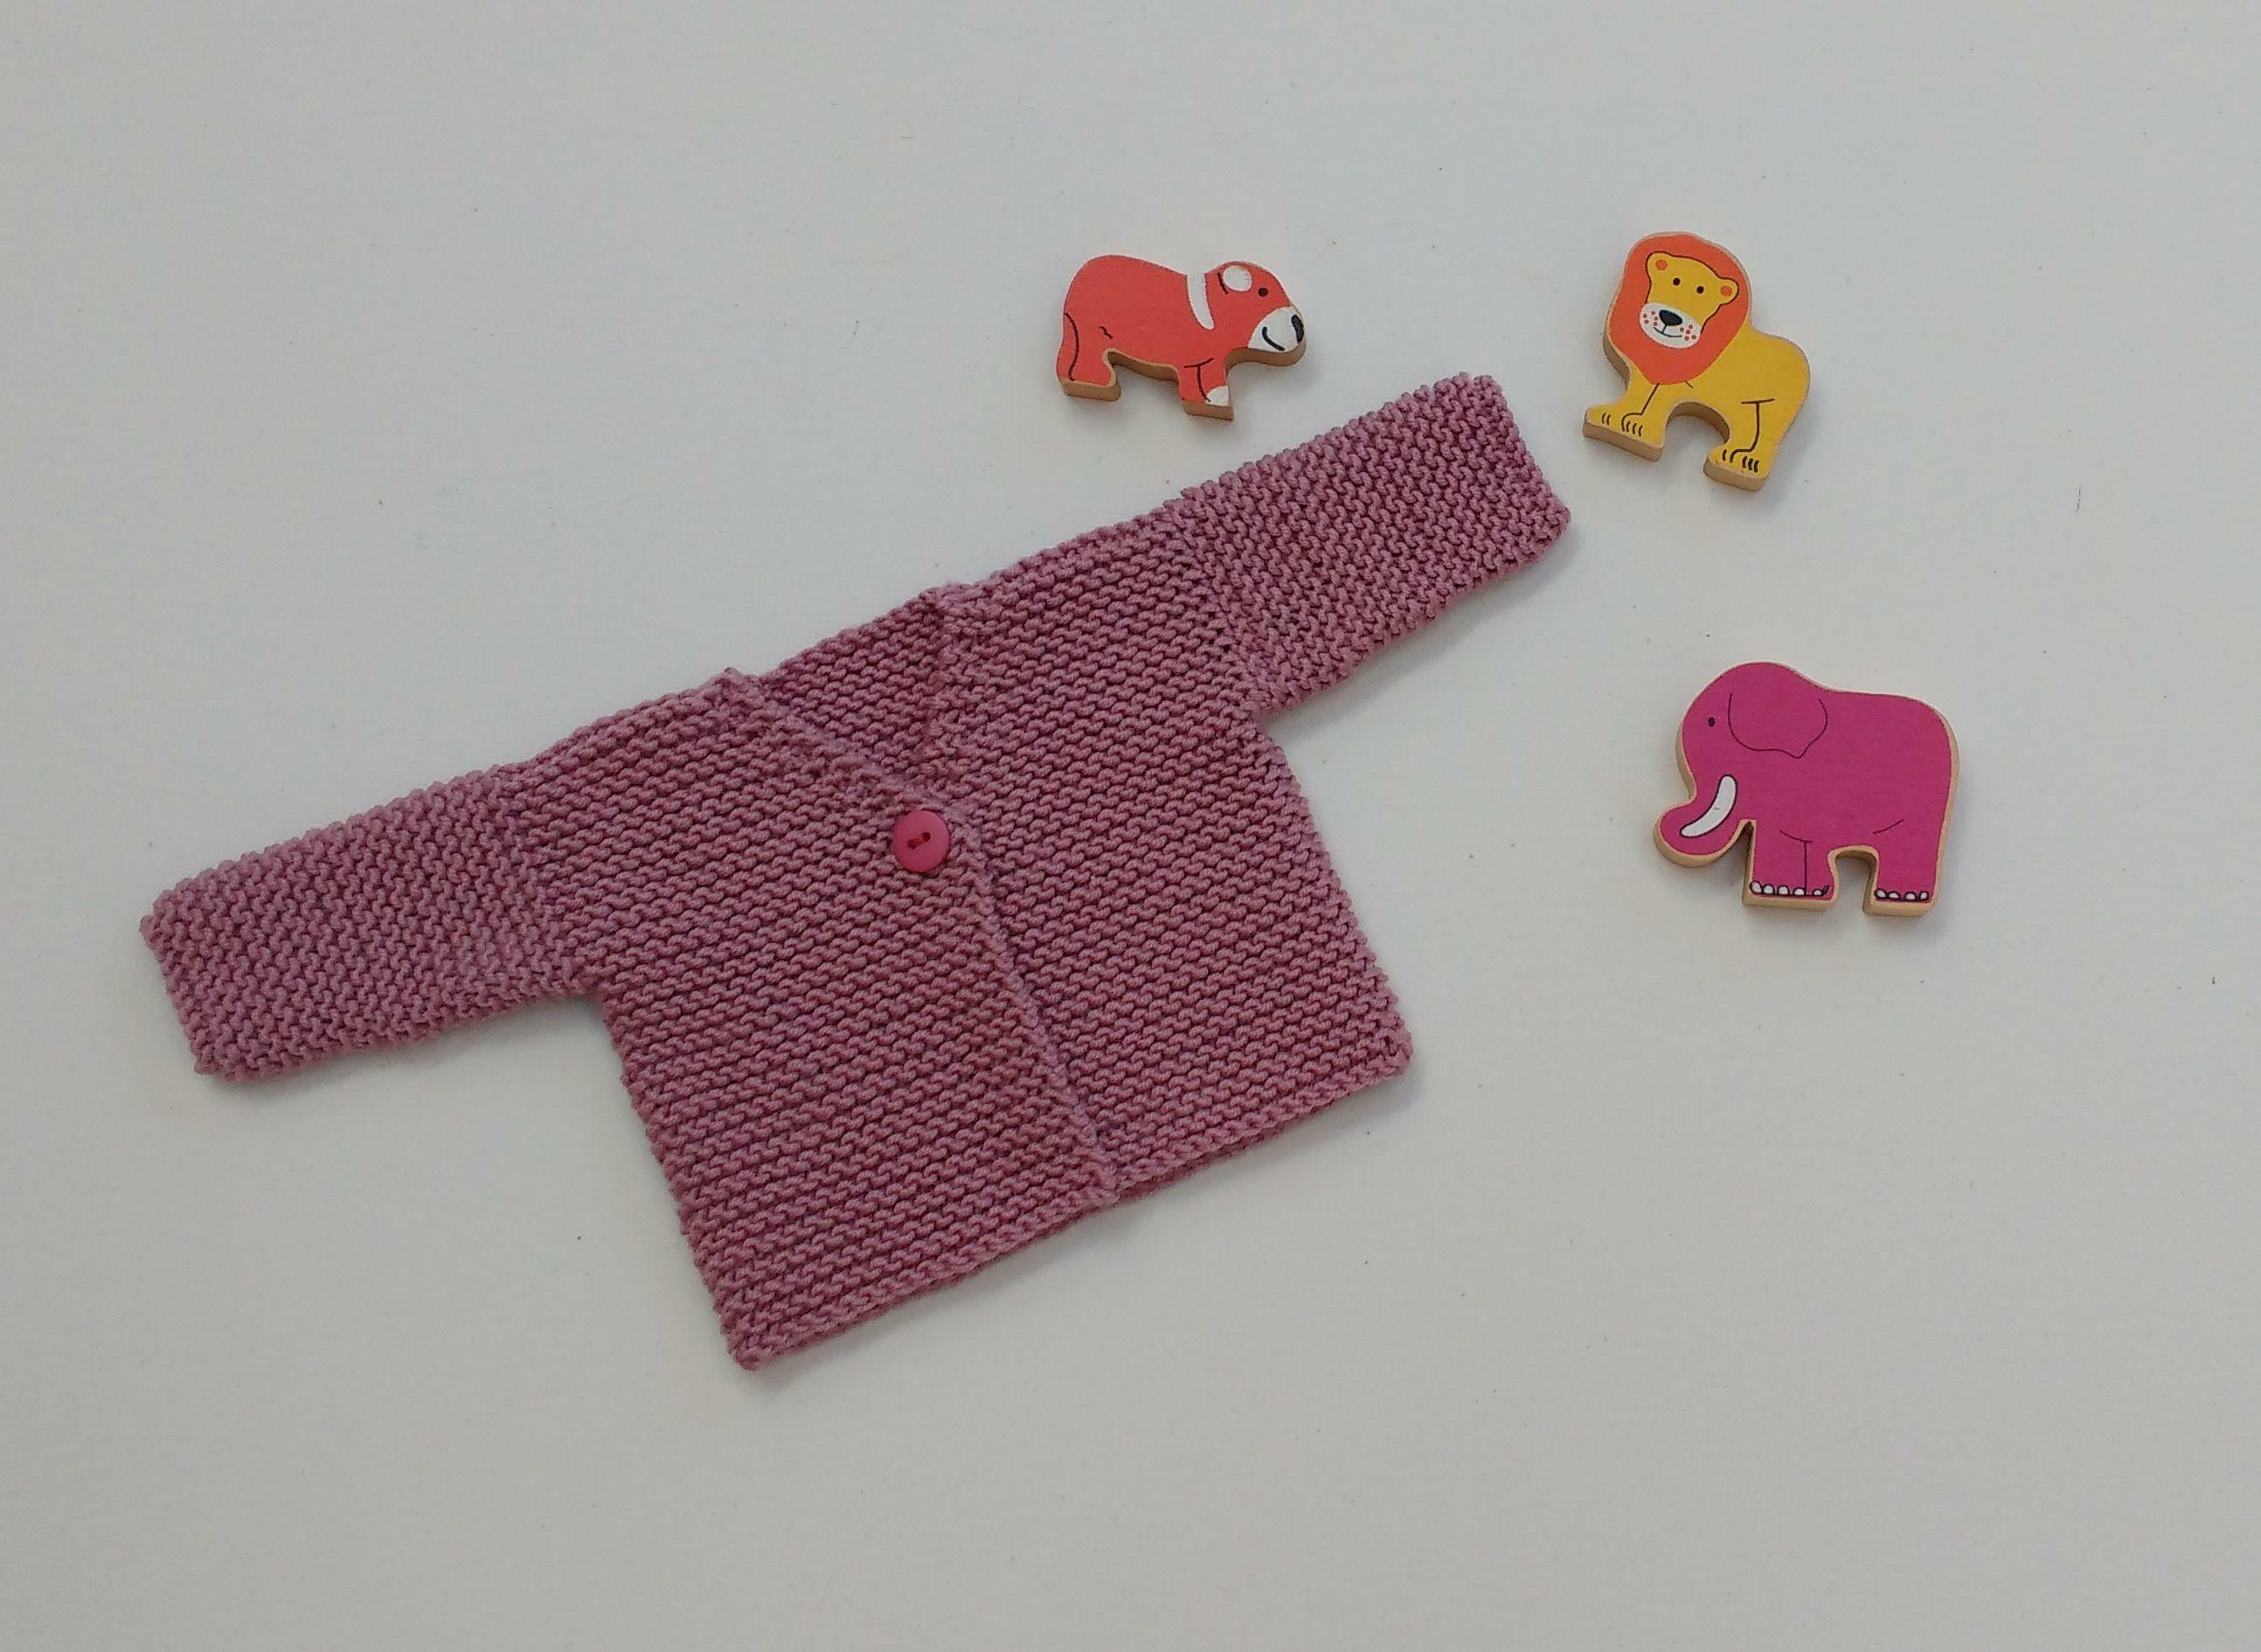 PREMATURE BABY-EARLY BABY 4lbs-5lbs Baby PINK CARDIGAN